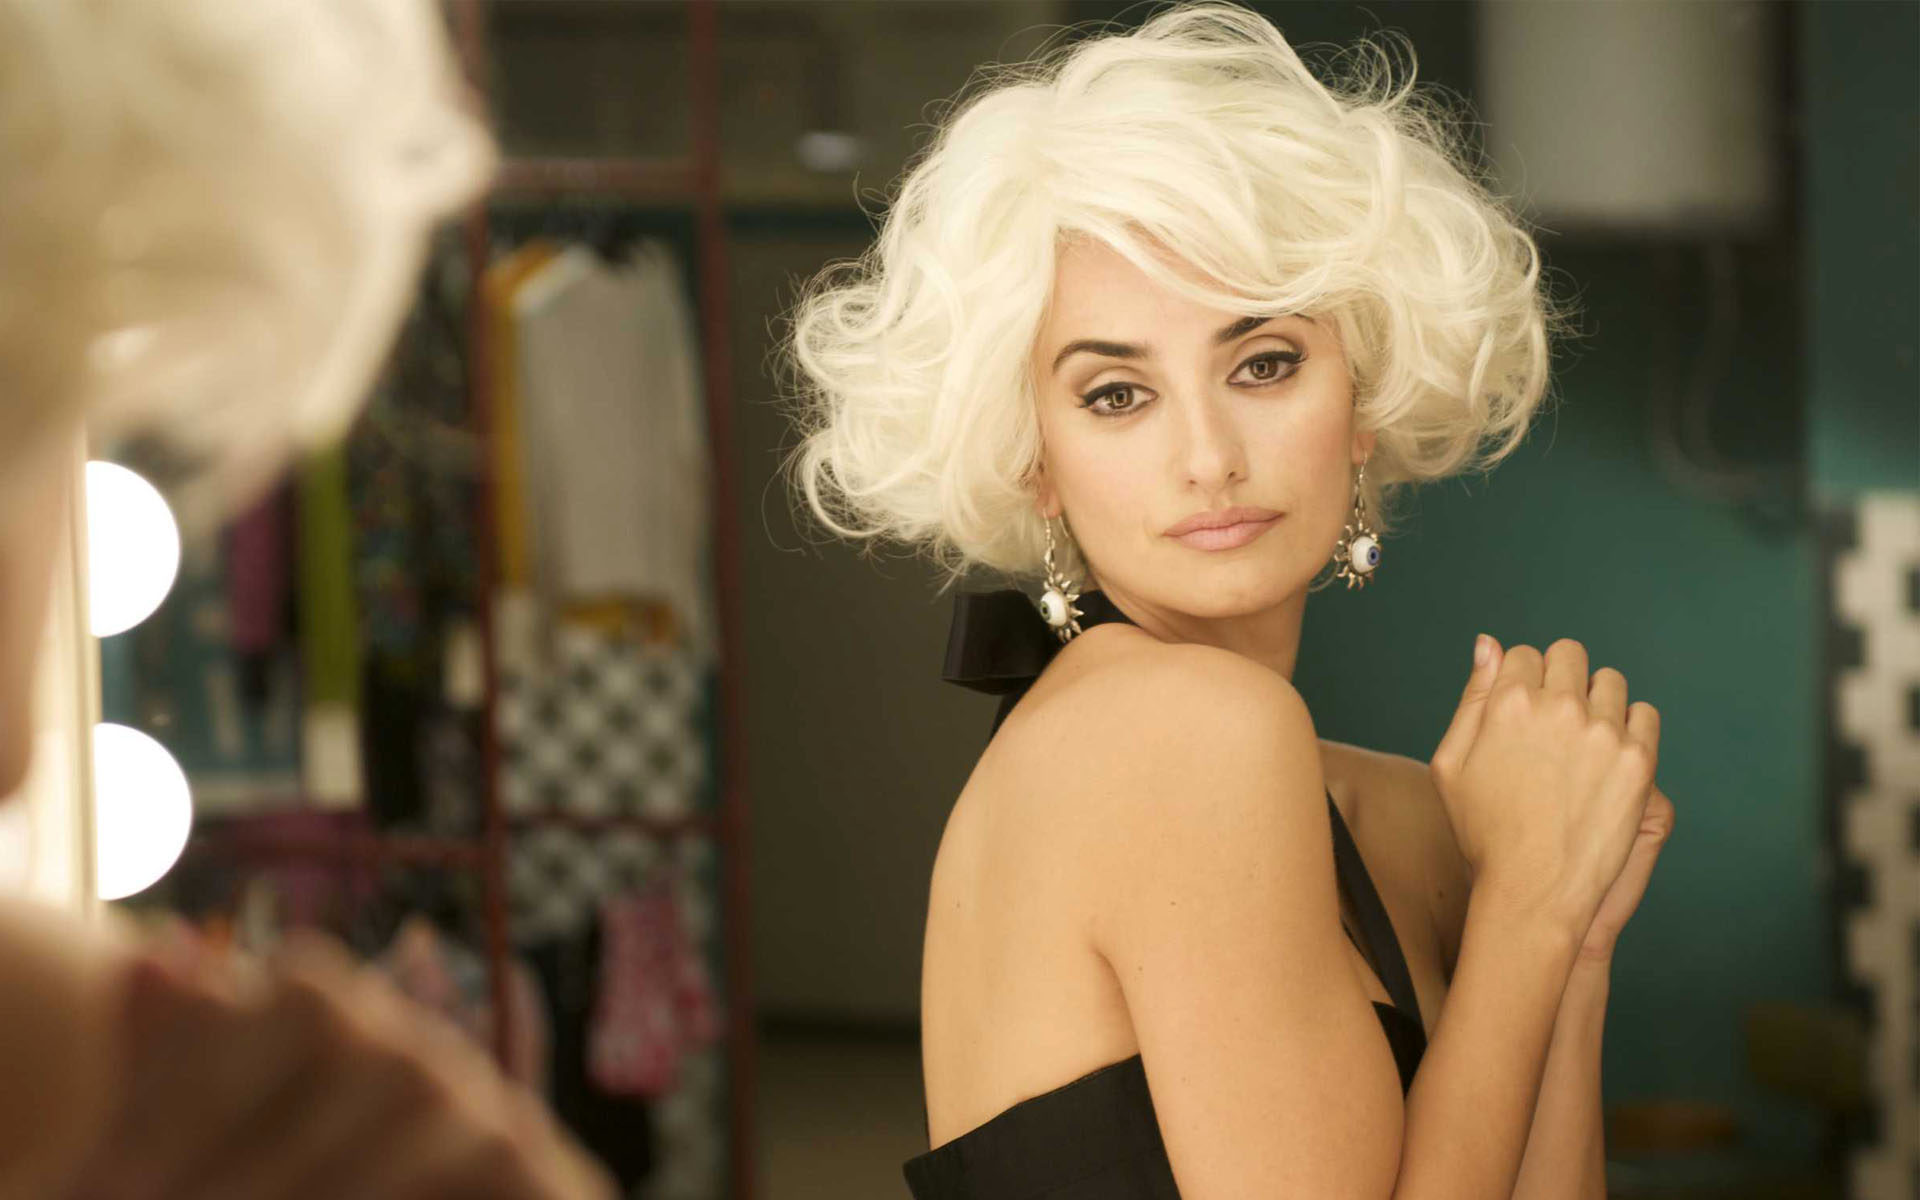 penelope cruz wallpaper 25998